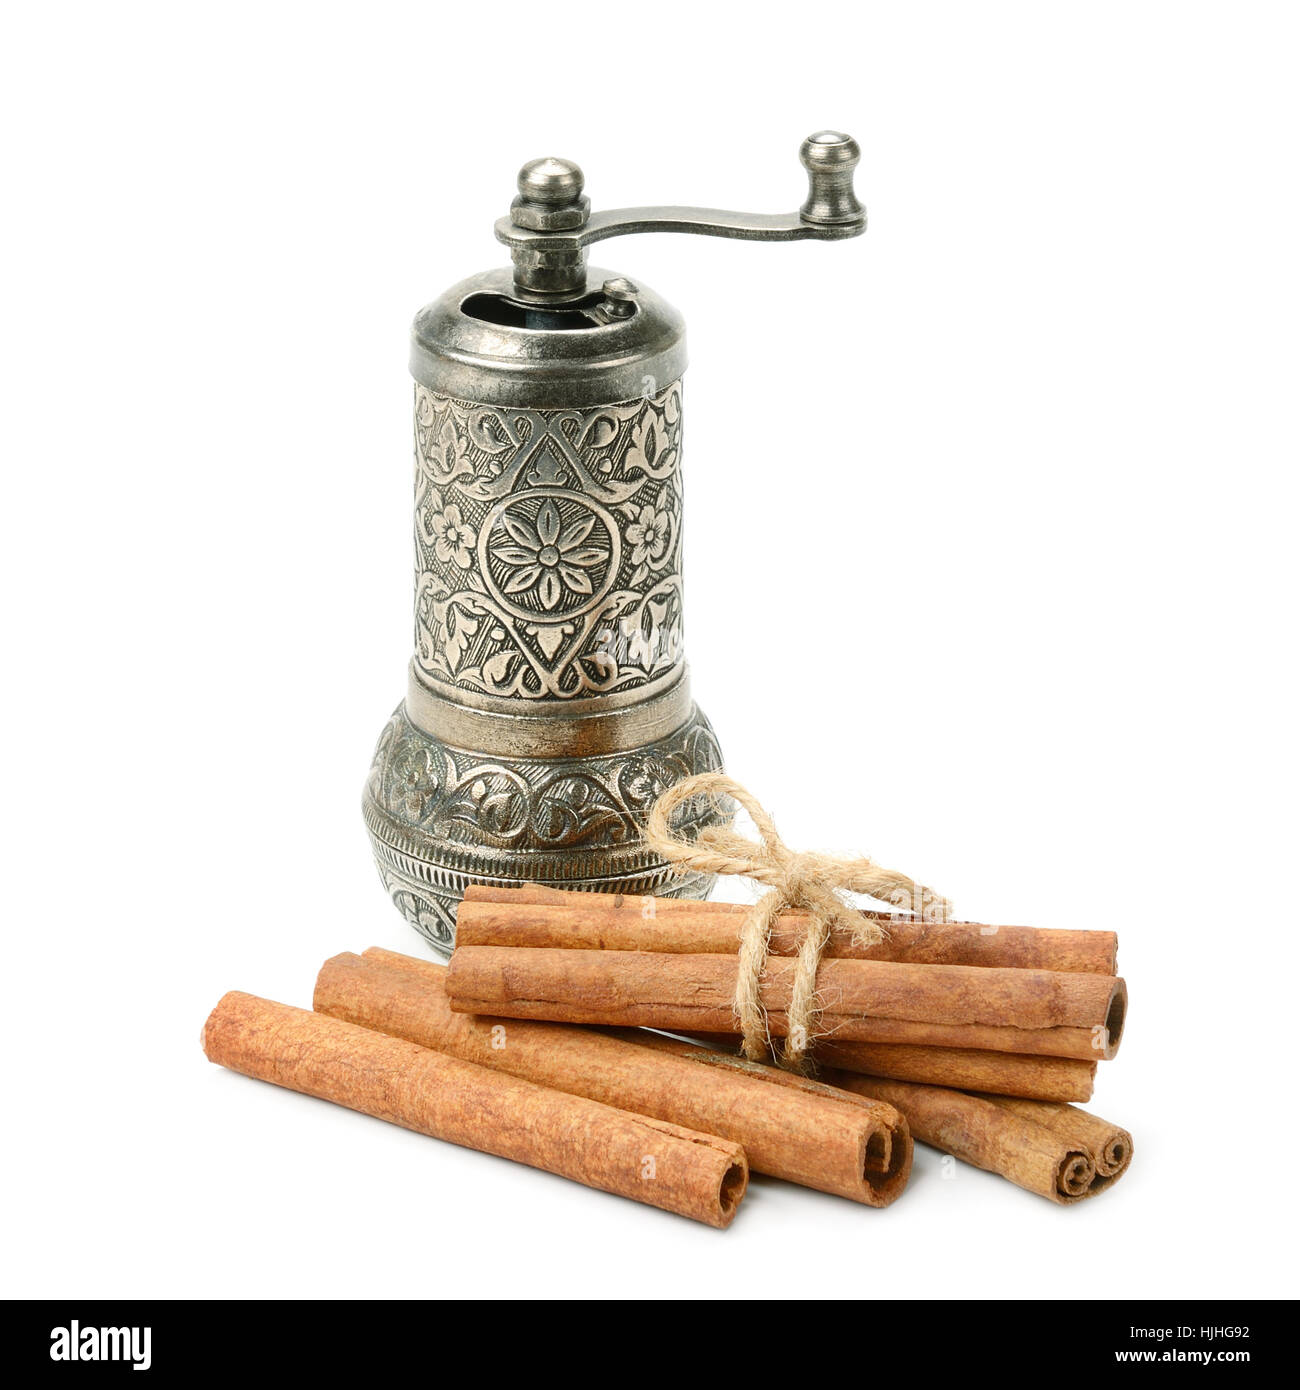 cinnamon and manual coffee grinder isolated on white background - Stock Image